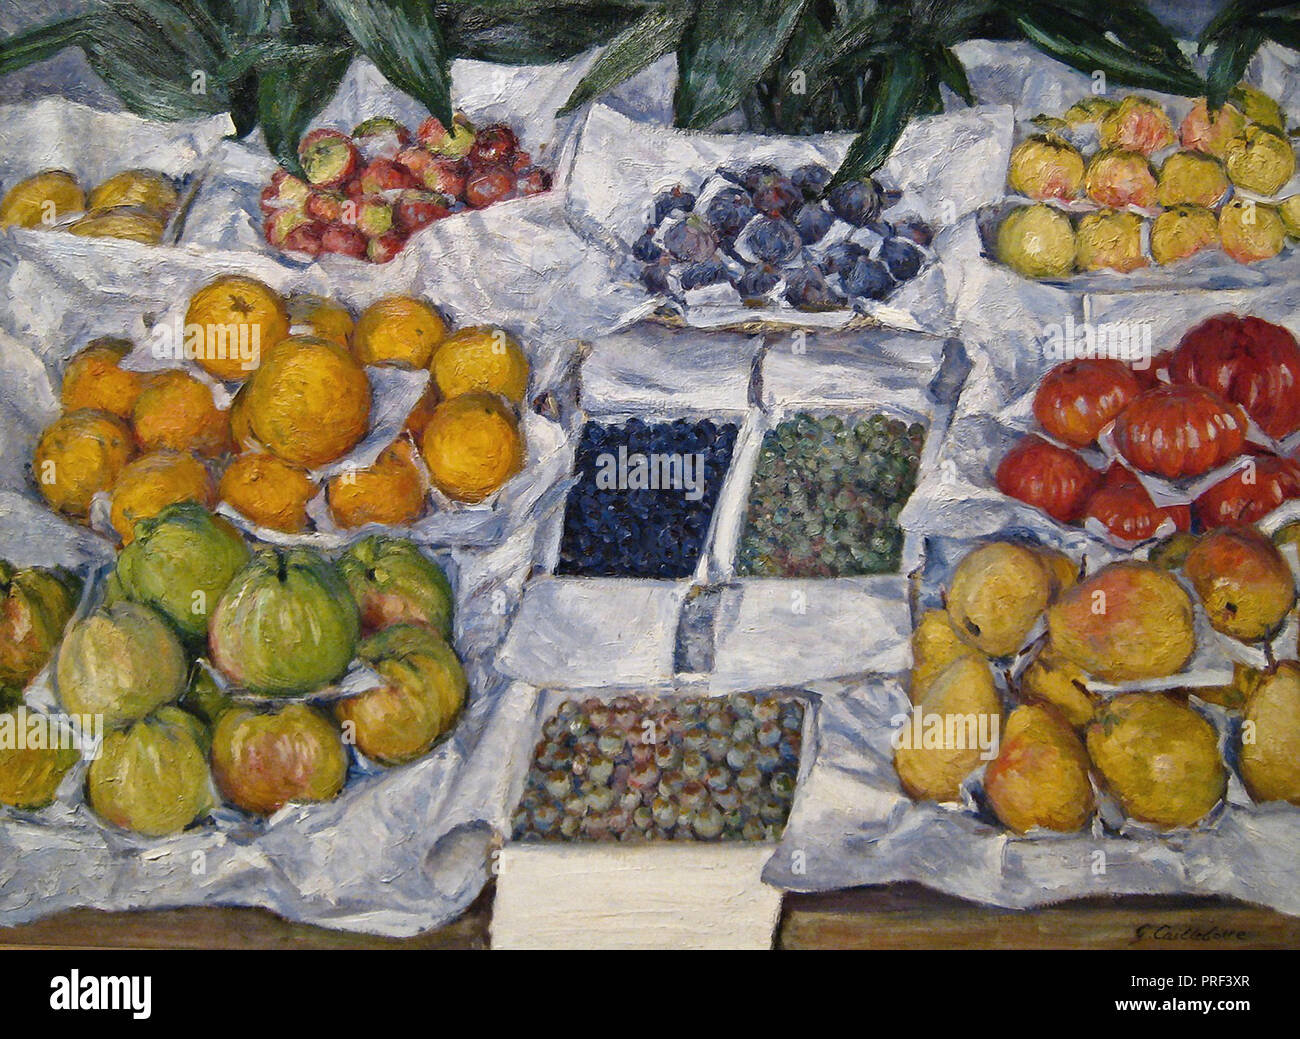 Caillebotte  Gustave - Fruit Displayed on a Stand - Stock Image